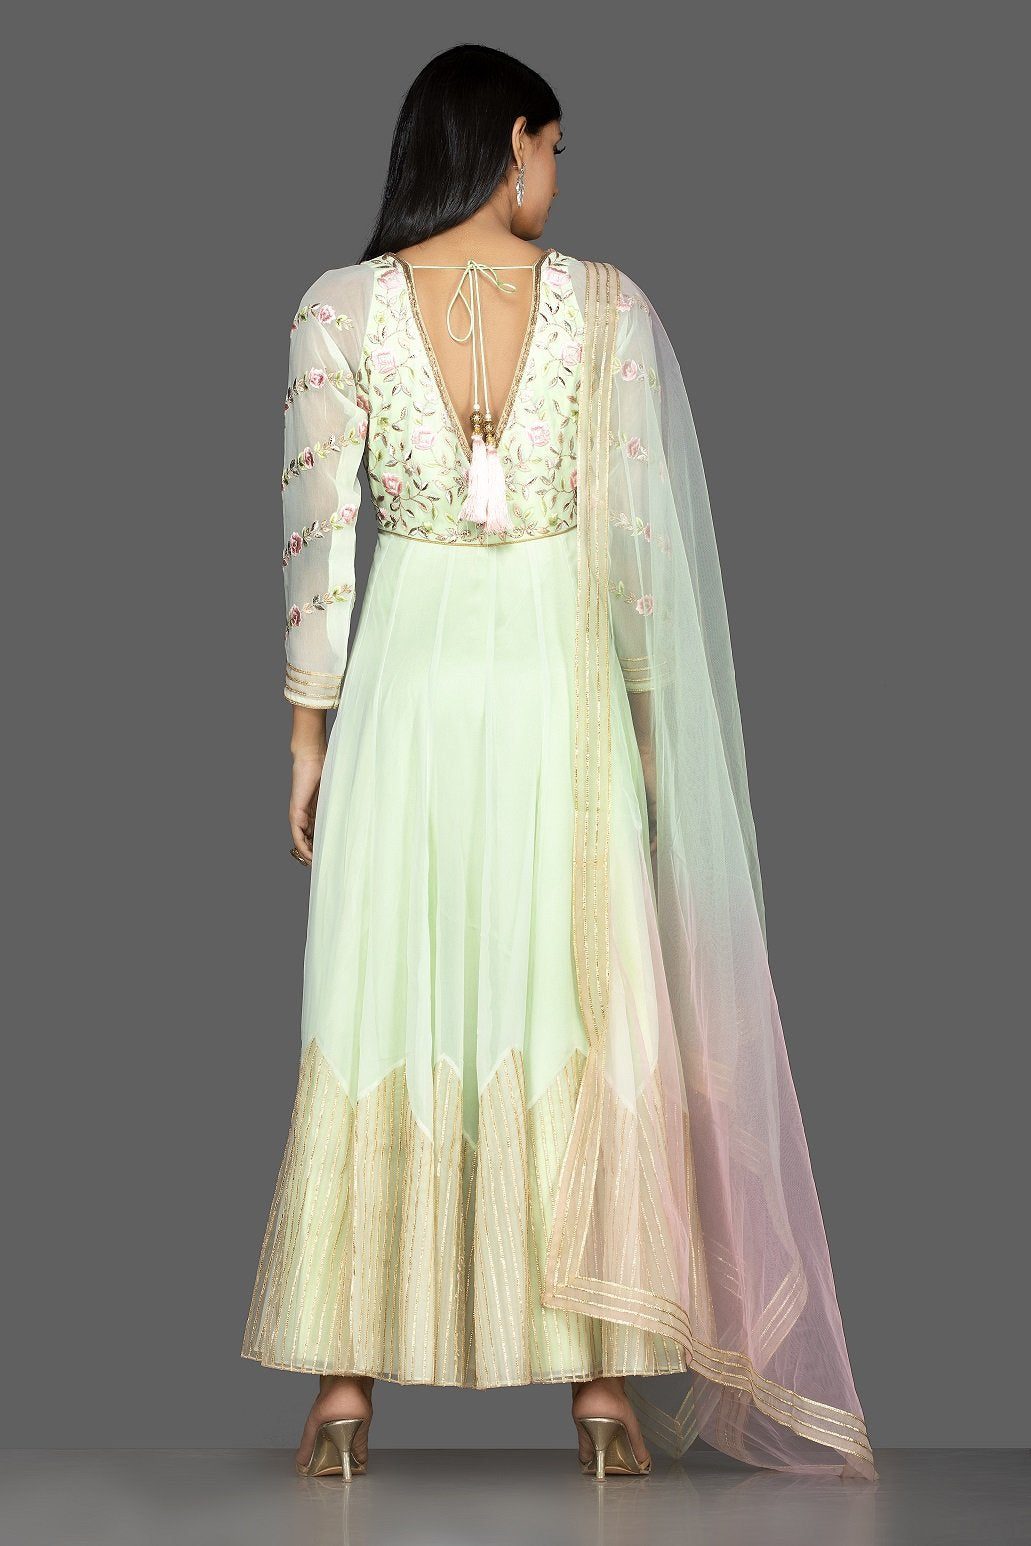 Buy mint green embroidered net floorlength Anarkali online in USA with dupatta. Spread ethnic elegance on weddings and special occasions in splendid designer lehengas, Anarkali suits crafted with exquisite Indian craftsmanship from Pure Elegance Indian fashion store in USA.-back